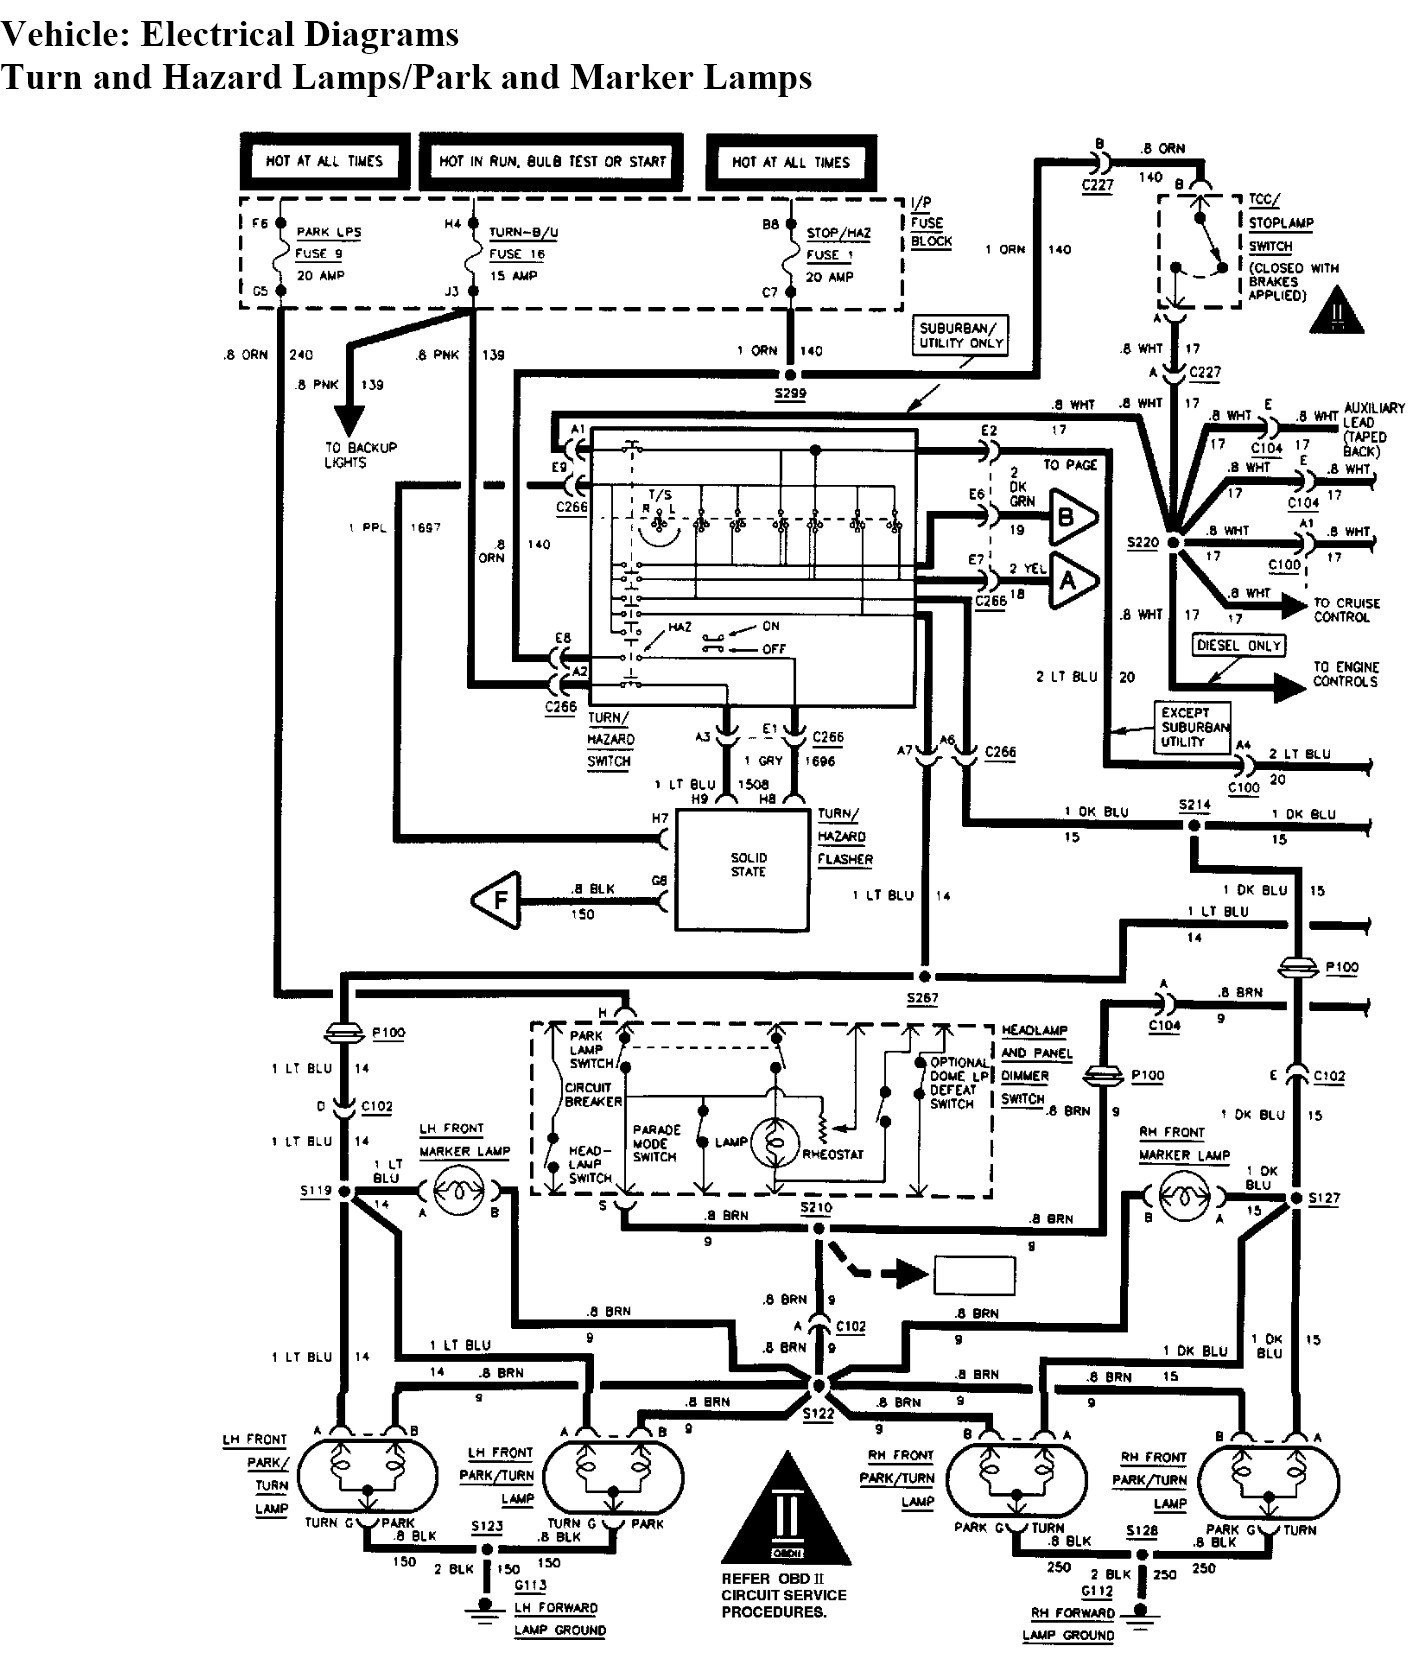 Jeep Grand Cherokee Exhaust System Diagram Schematic Diagrams 2000 Jeep  Grand Cherokee Limited Parts Manual 2000 Jeep Grand Cherokee Laredo Parts  Diagram